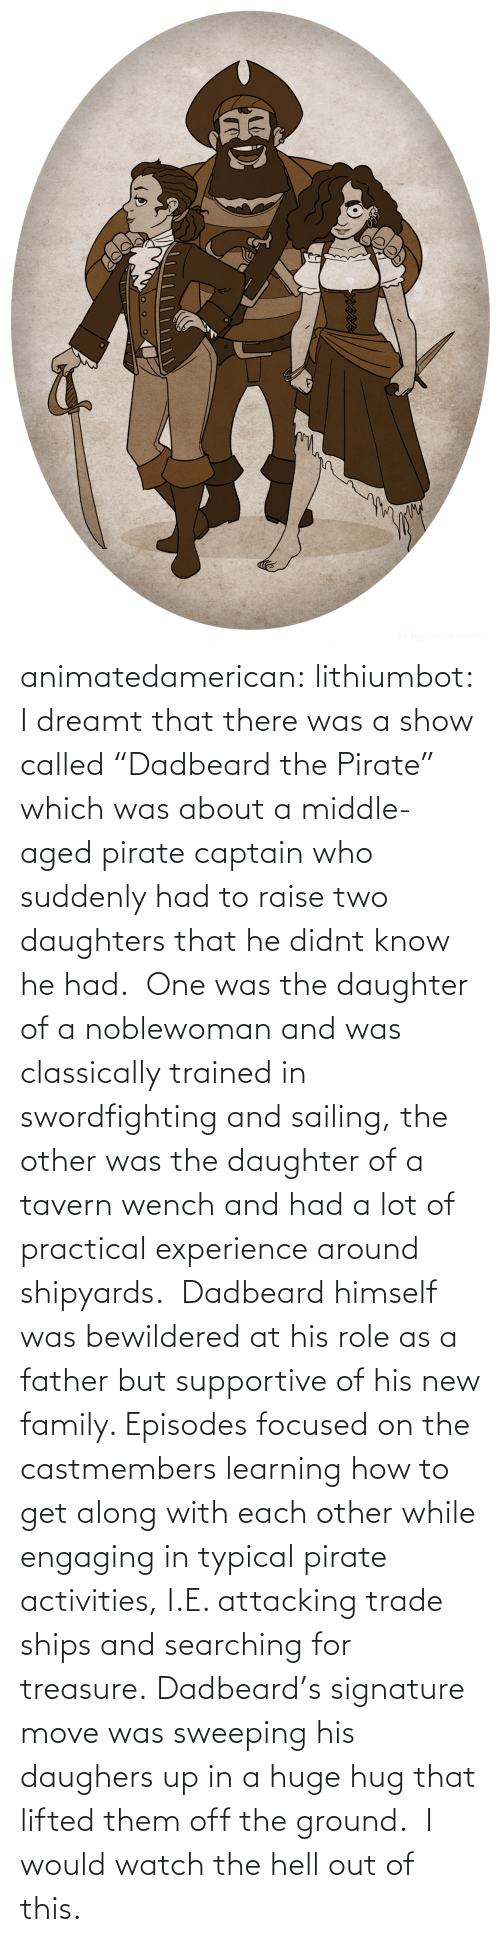 "He Had: animatedamerican: lithiumbot:  I dreamt that there was a show called ""Dadbeard the Pirate"" which was about a middle-aged pirate captain who suddenly had to raise two daughters that he didnt know he had.  One was the daughter of a noblewoman and was classically trained in swordfighting and sailing, the other was the daughter of a tavern wench and had a lot of practical experience around shipyards.  Dadbeard himself was bewildered at his role as a father but supportive of his new family. Episodes focused on the castmembers learning how to get along with each other while engaging in typical pirate activities, I.E. attacking trade ships and searching for treasure. Dadbeard's signature move was sweeping his daughers up in a huge hug that lifted them off the ground.   I would watch the hell out of this."